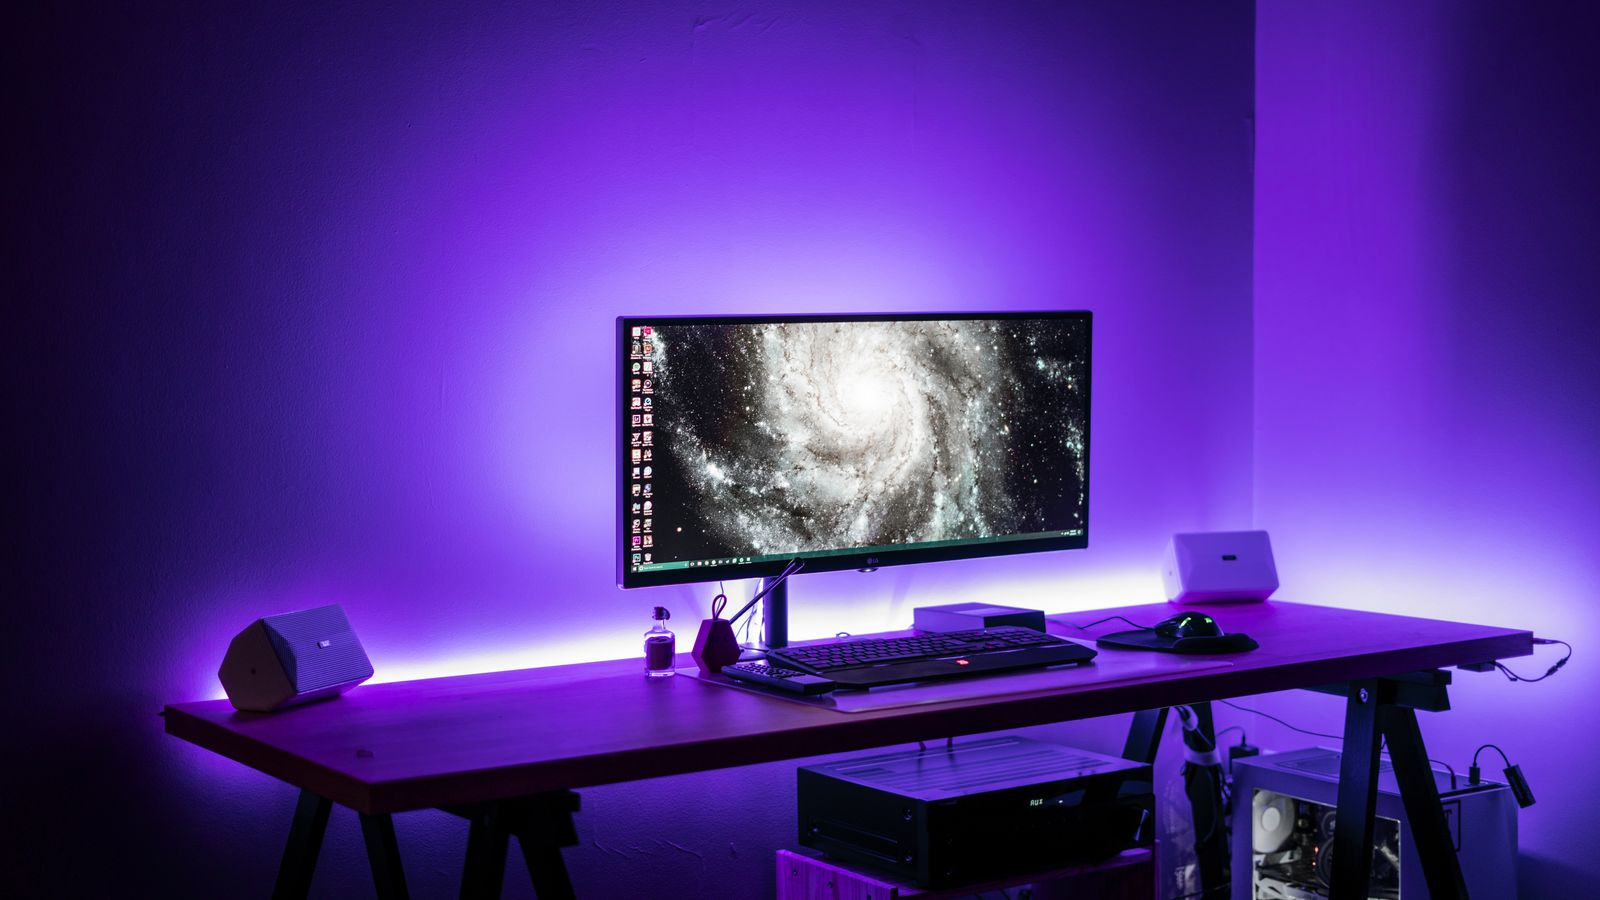 gaming desk purple light